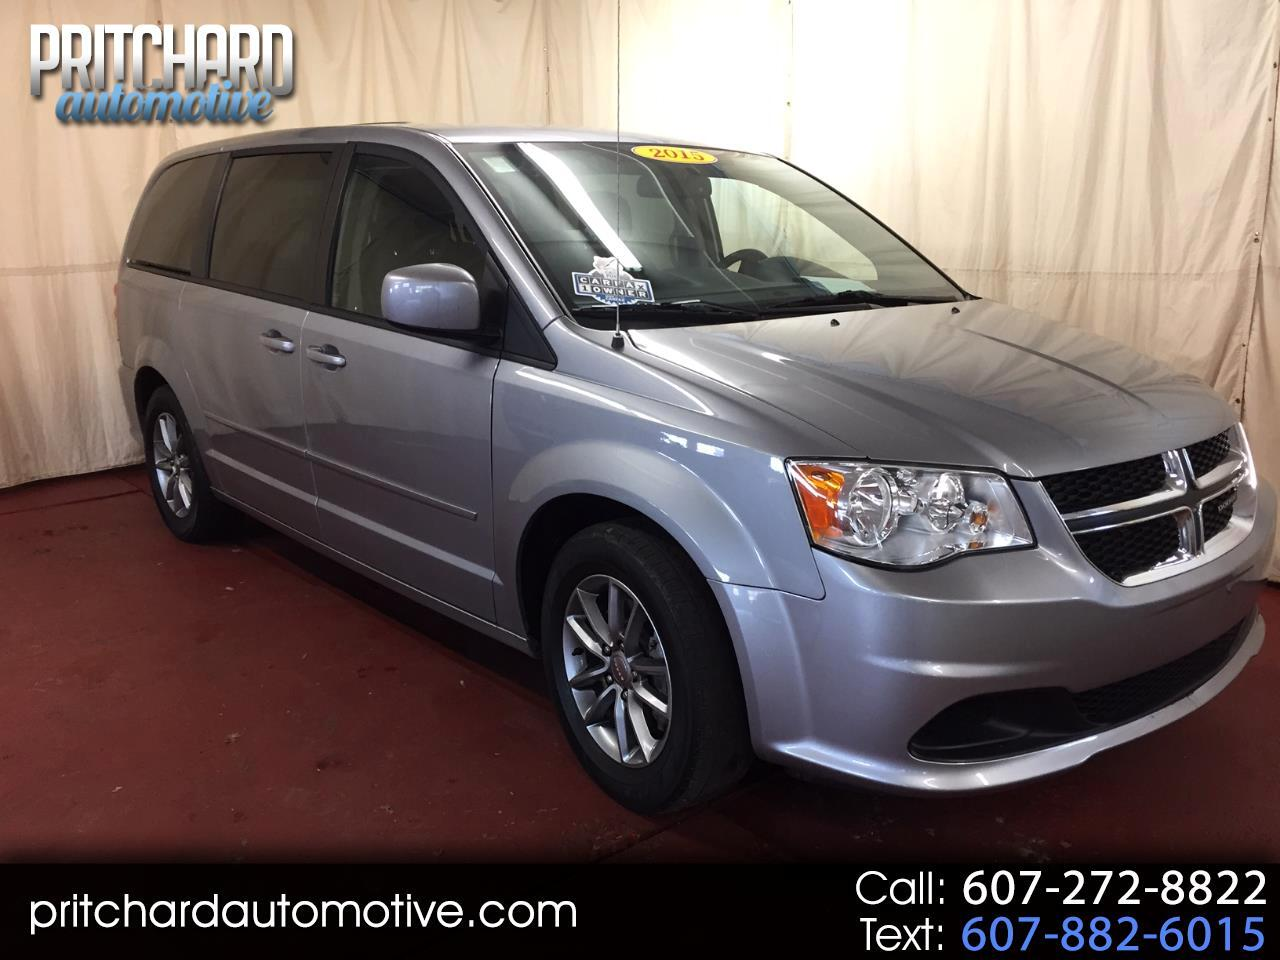 2015 Dodge Grand Caravan 4dr Wgn SE Plus